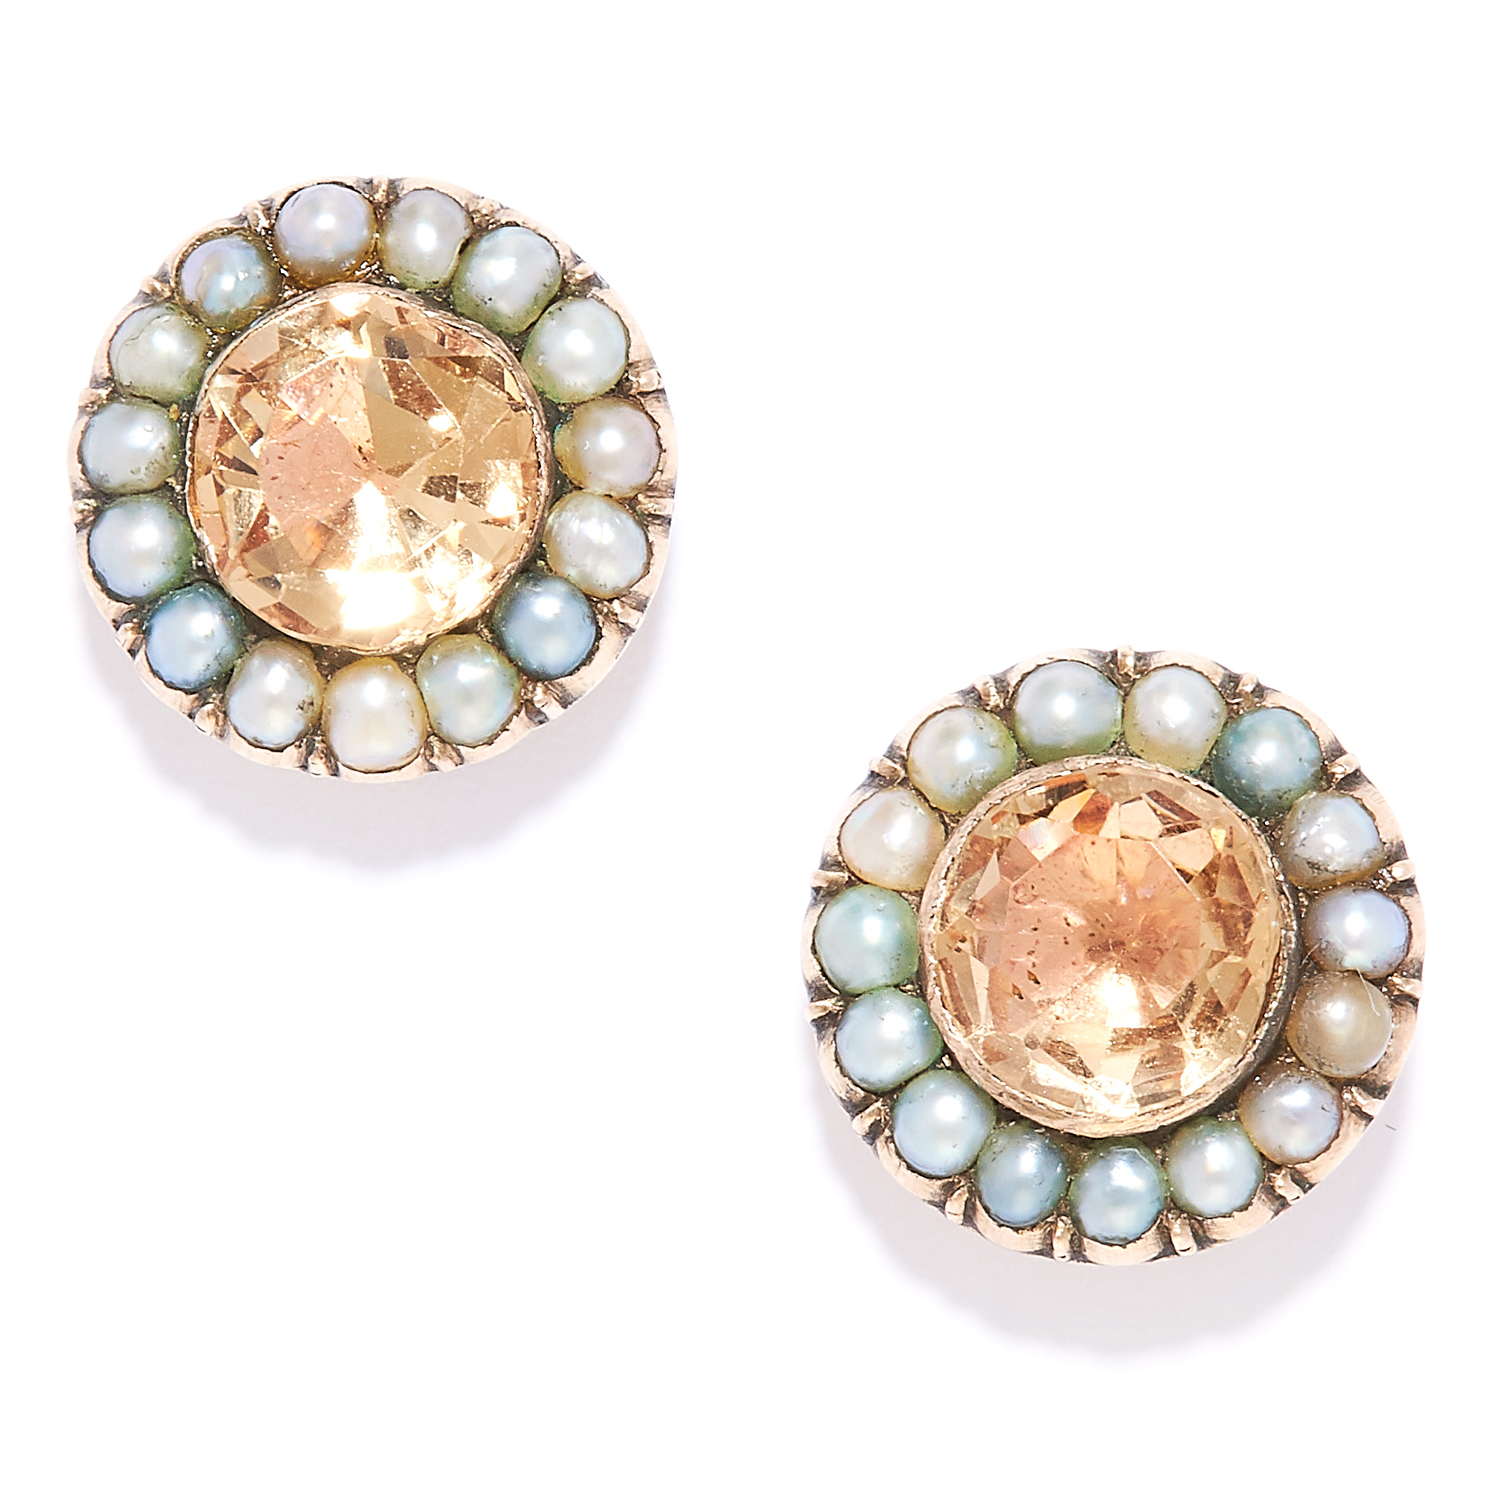 Los 19 - ANTIQUE IMPERIAL TOPAZ AND PEARL EARRINGS in yellow gold, set with two imperial topaz totalling